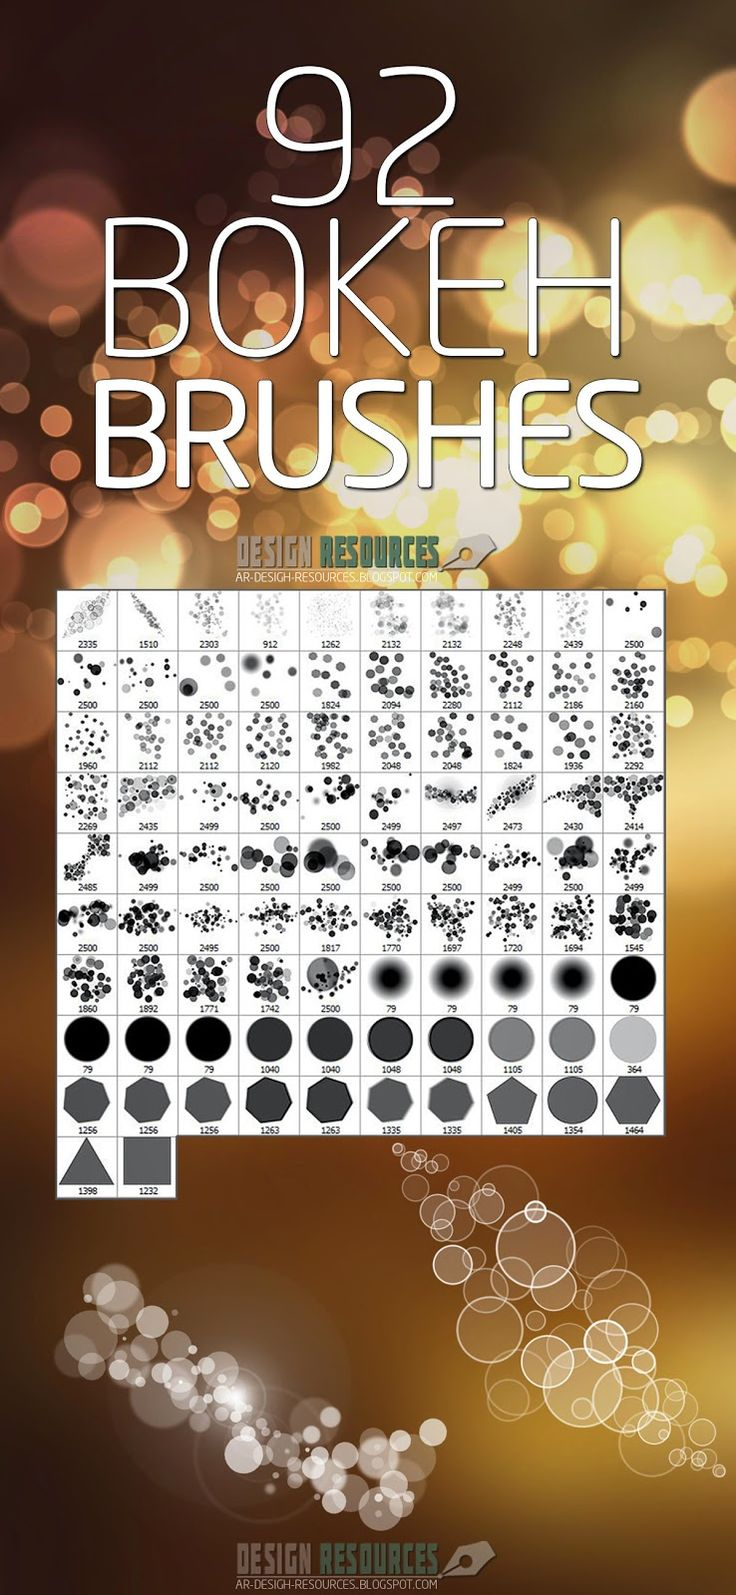 92 bokeh brushes photoshop add ons